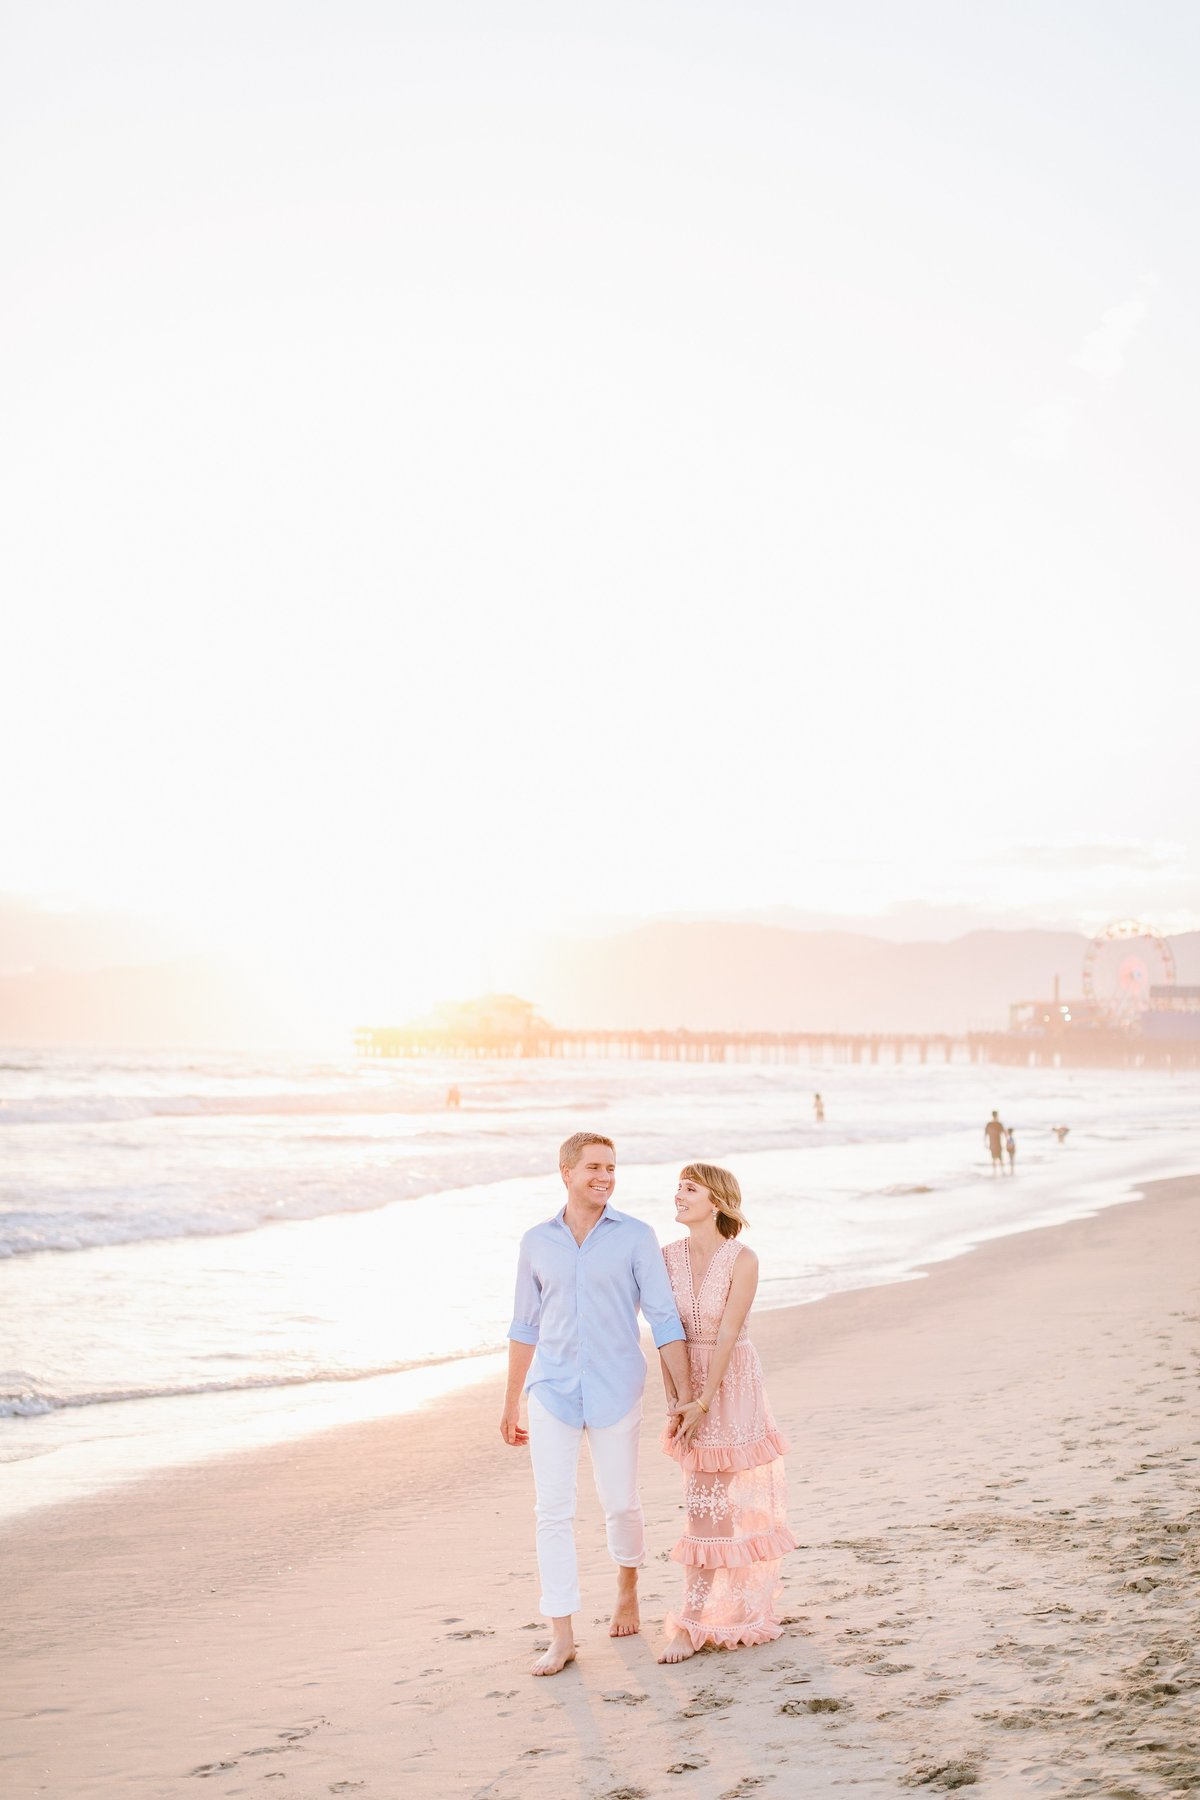 Best California Engagement Photographer_Jodee Debes Photography_107